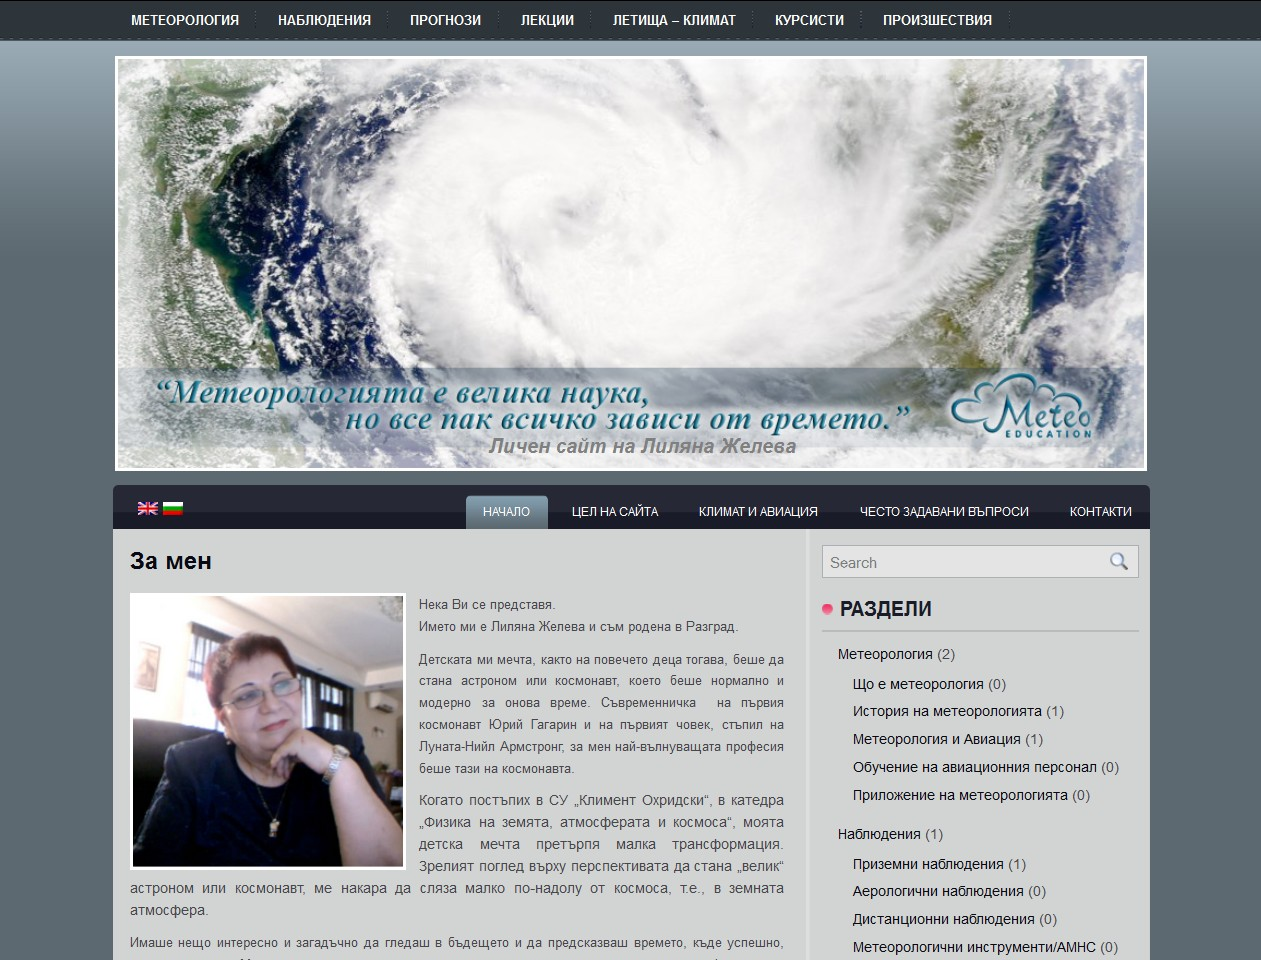 Web site for meteorology education